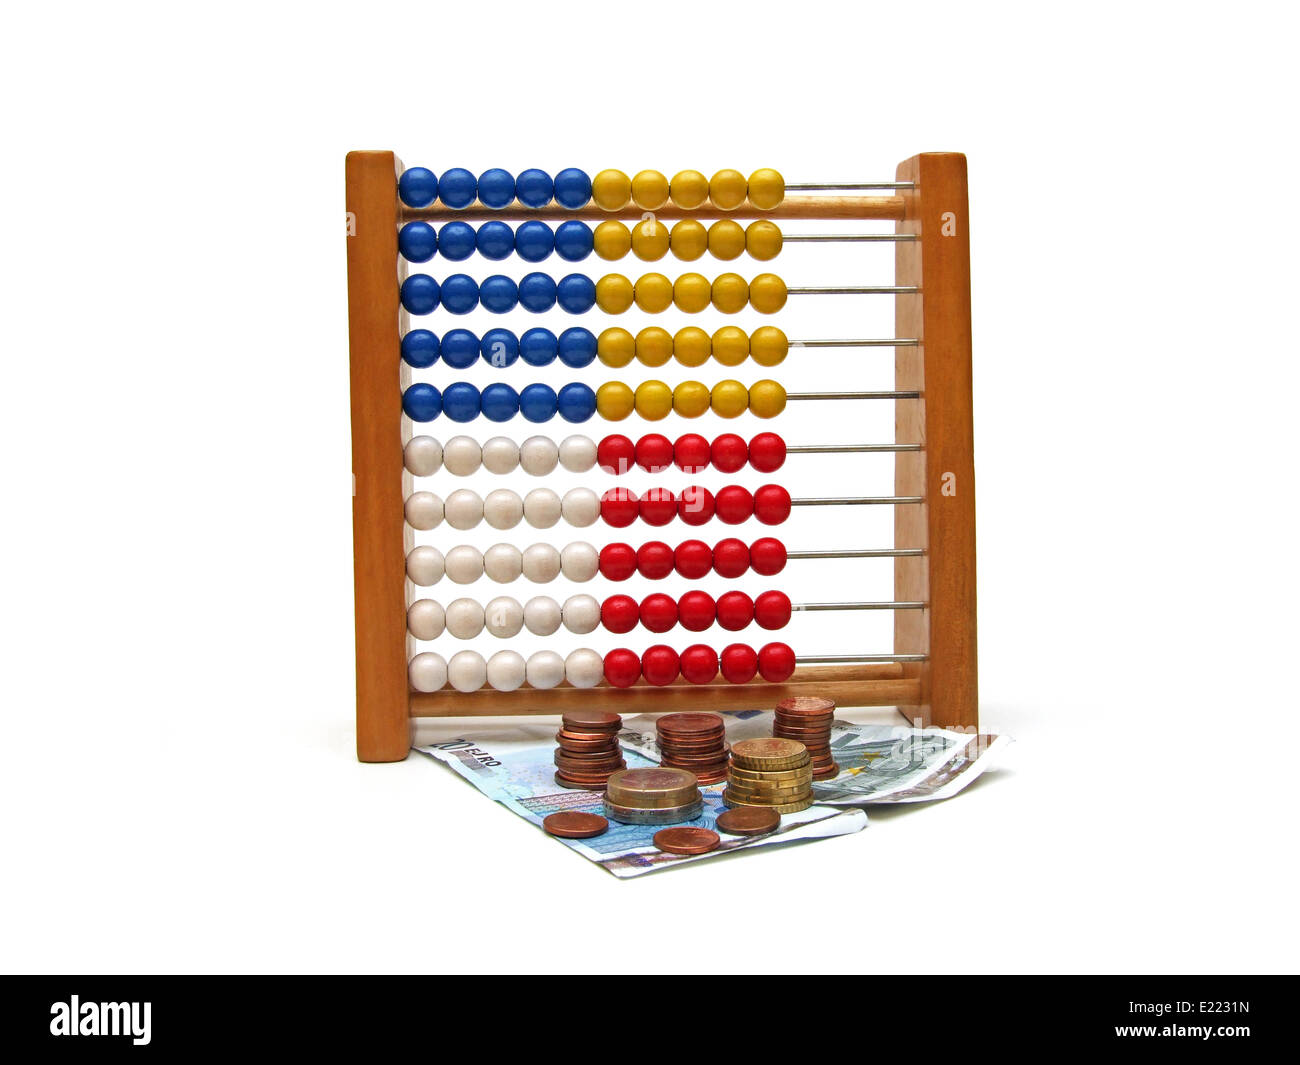 abacus and money - Stock Image